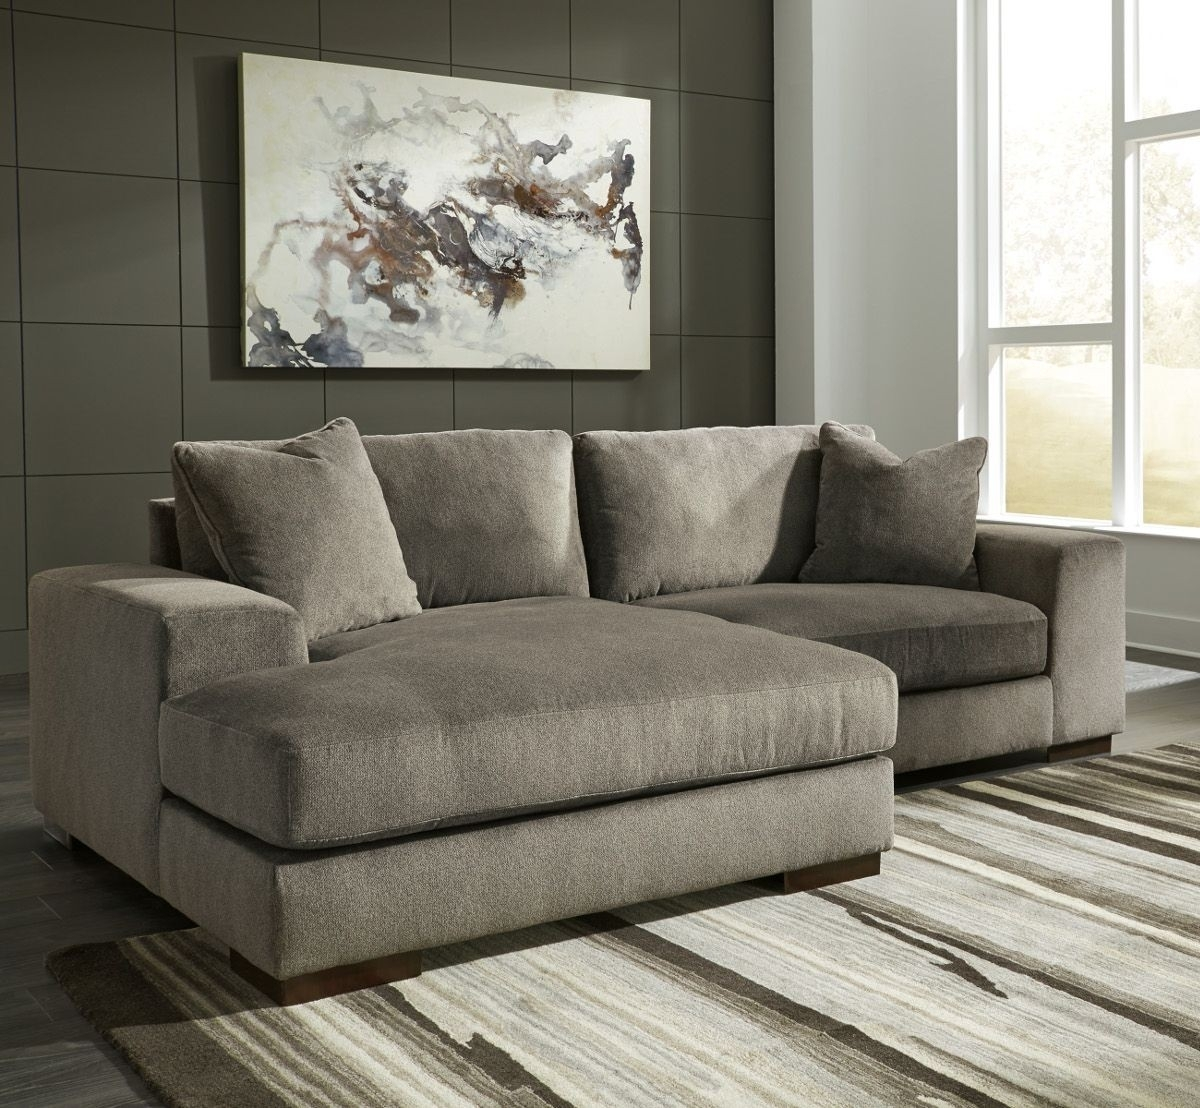 Ashley Furniture Manzani 2 Piece Sectional With Laf Chaise In throughout Aspen 2 Piece Sectionals With Laf Chaise (Image 5 of 30)